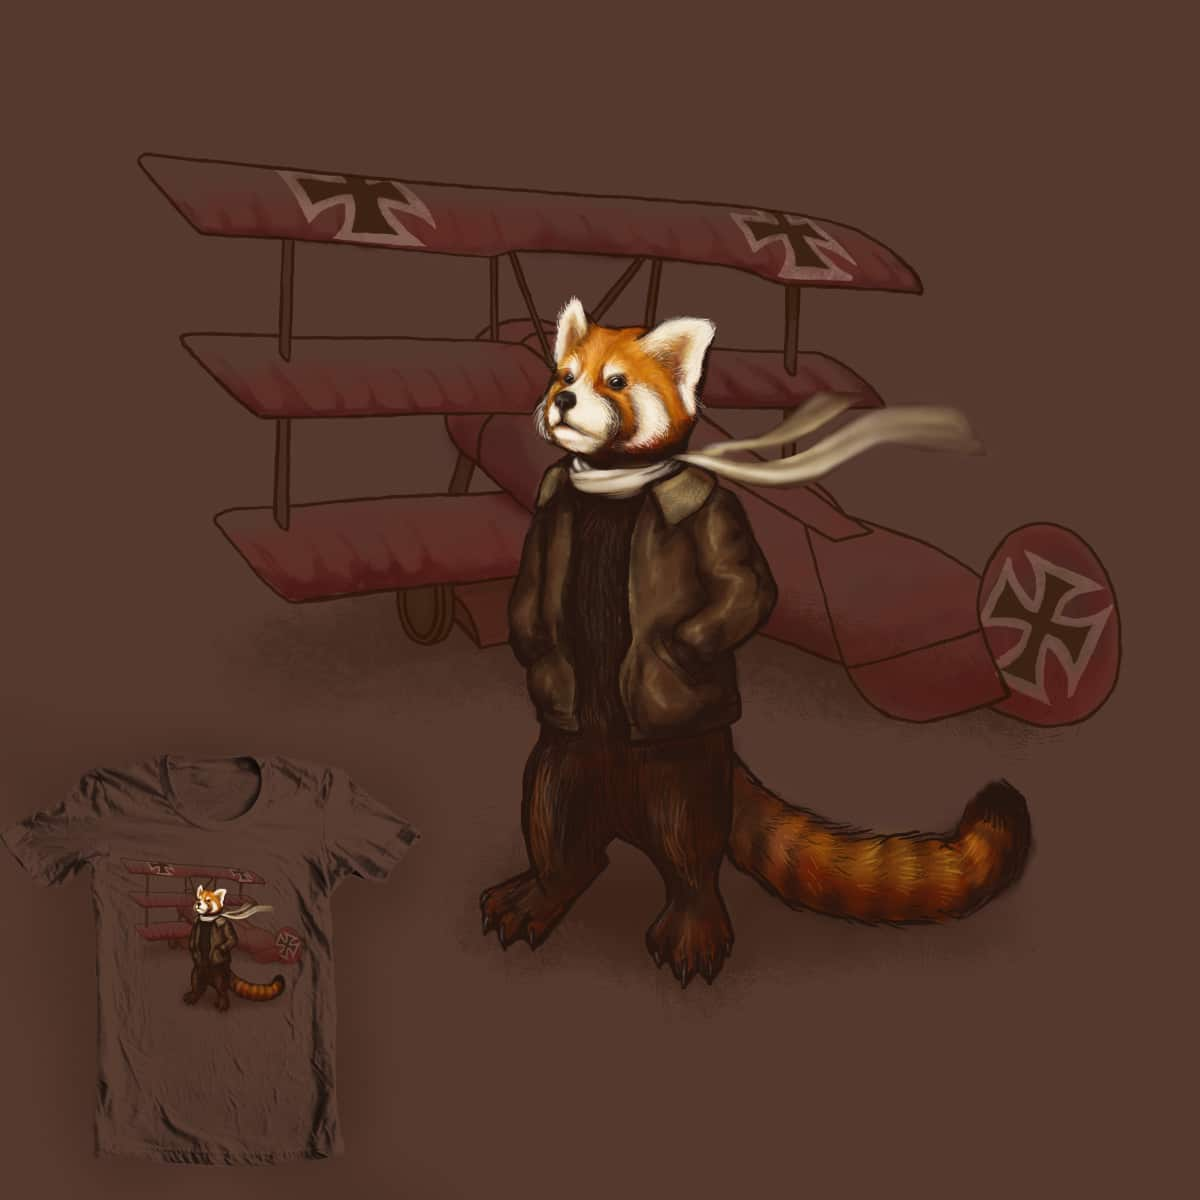 The Red Panda Baron by Pyne on Threadless